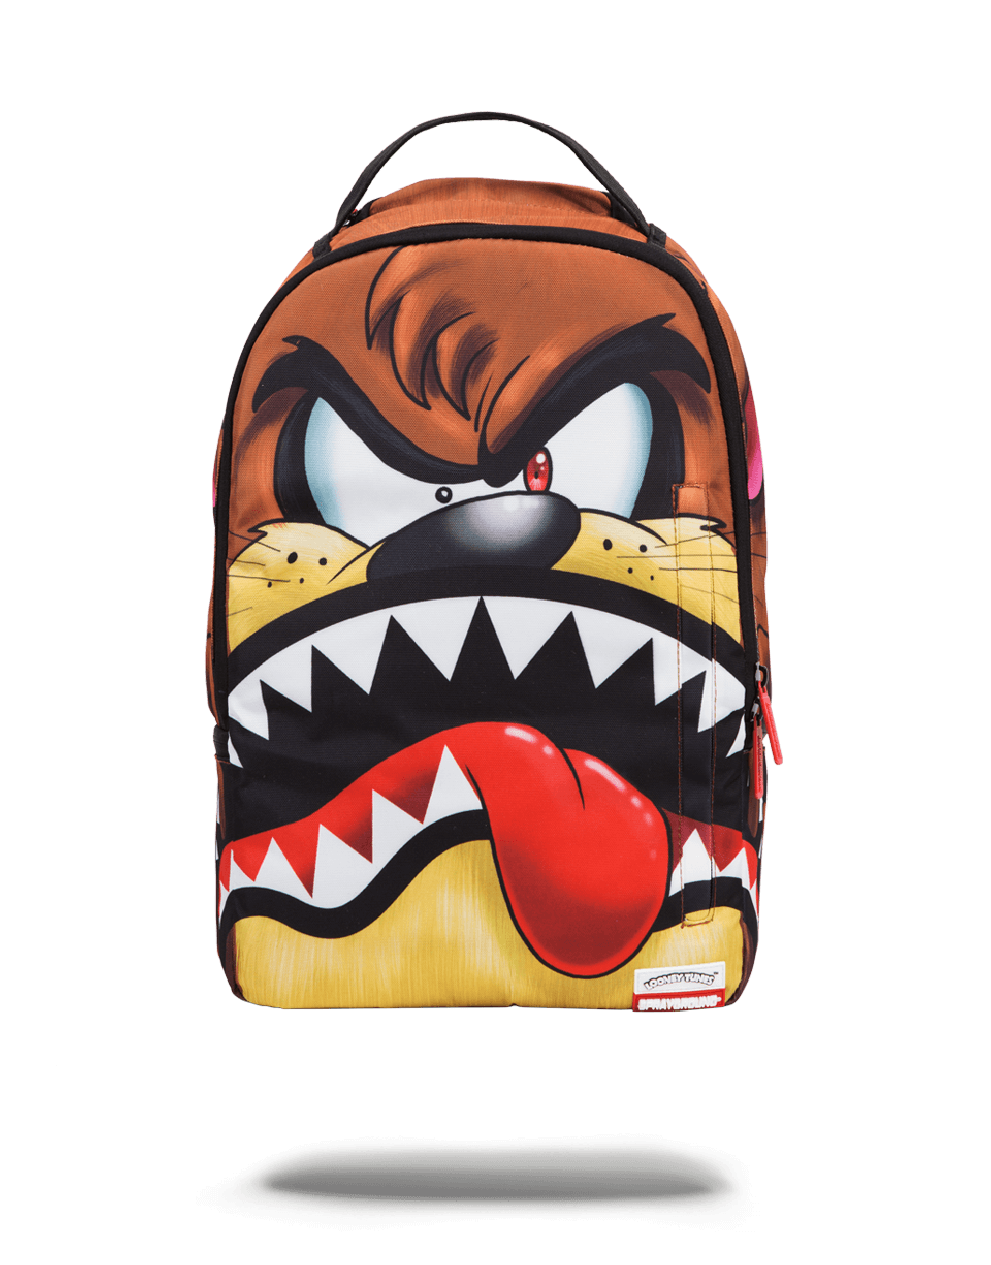 clipart black and white download Bookbag clipart blessing backpack. Looney tunes taz shark